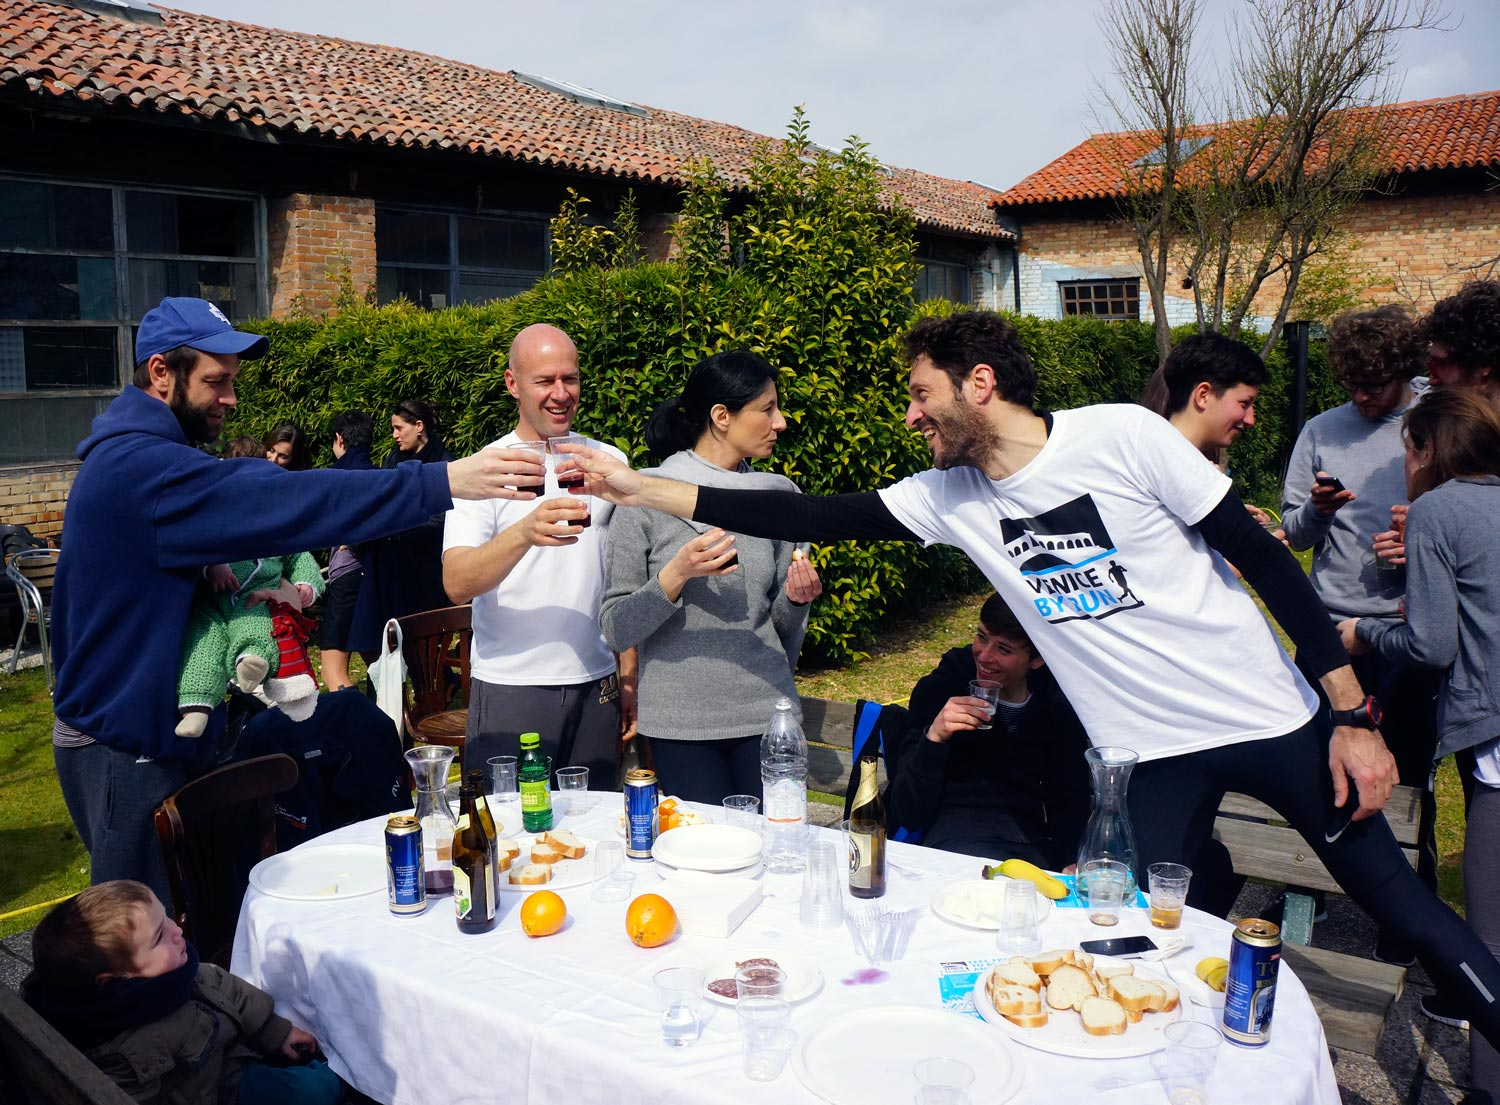 Runners having a cheers in Venice after the run